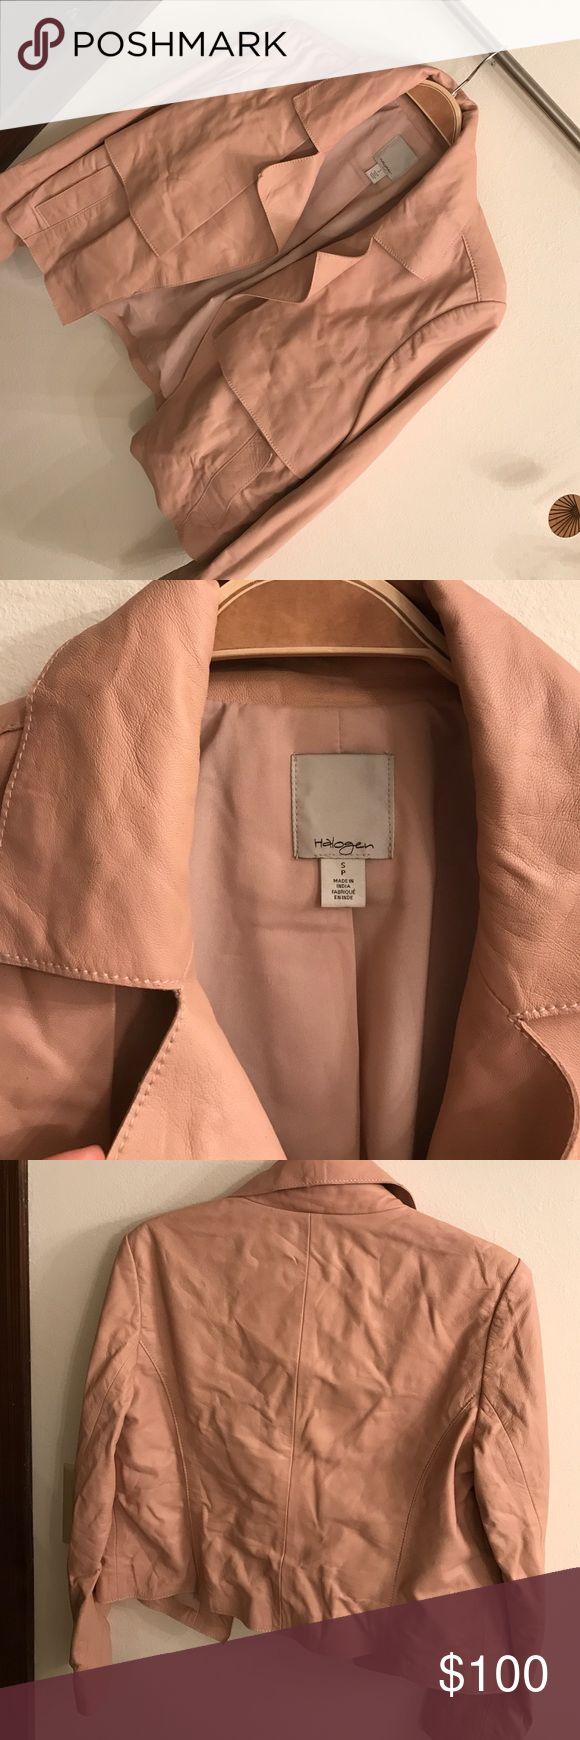 Halogen cropped leather jacket Butter soft, ballet pink. Hits right at the waist, open front. Some speckling from wear but can easily be cleaned. Halogen Jackets & Coats